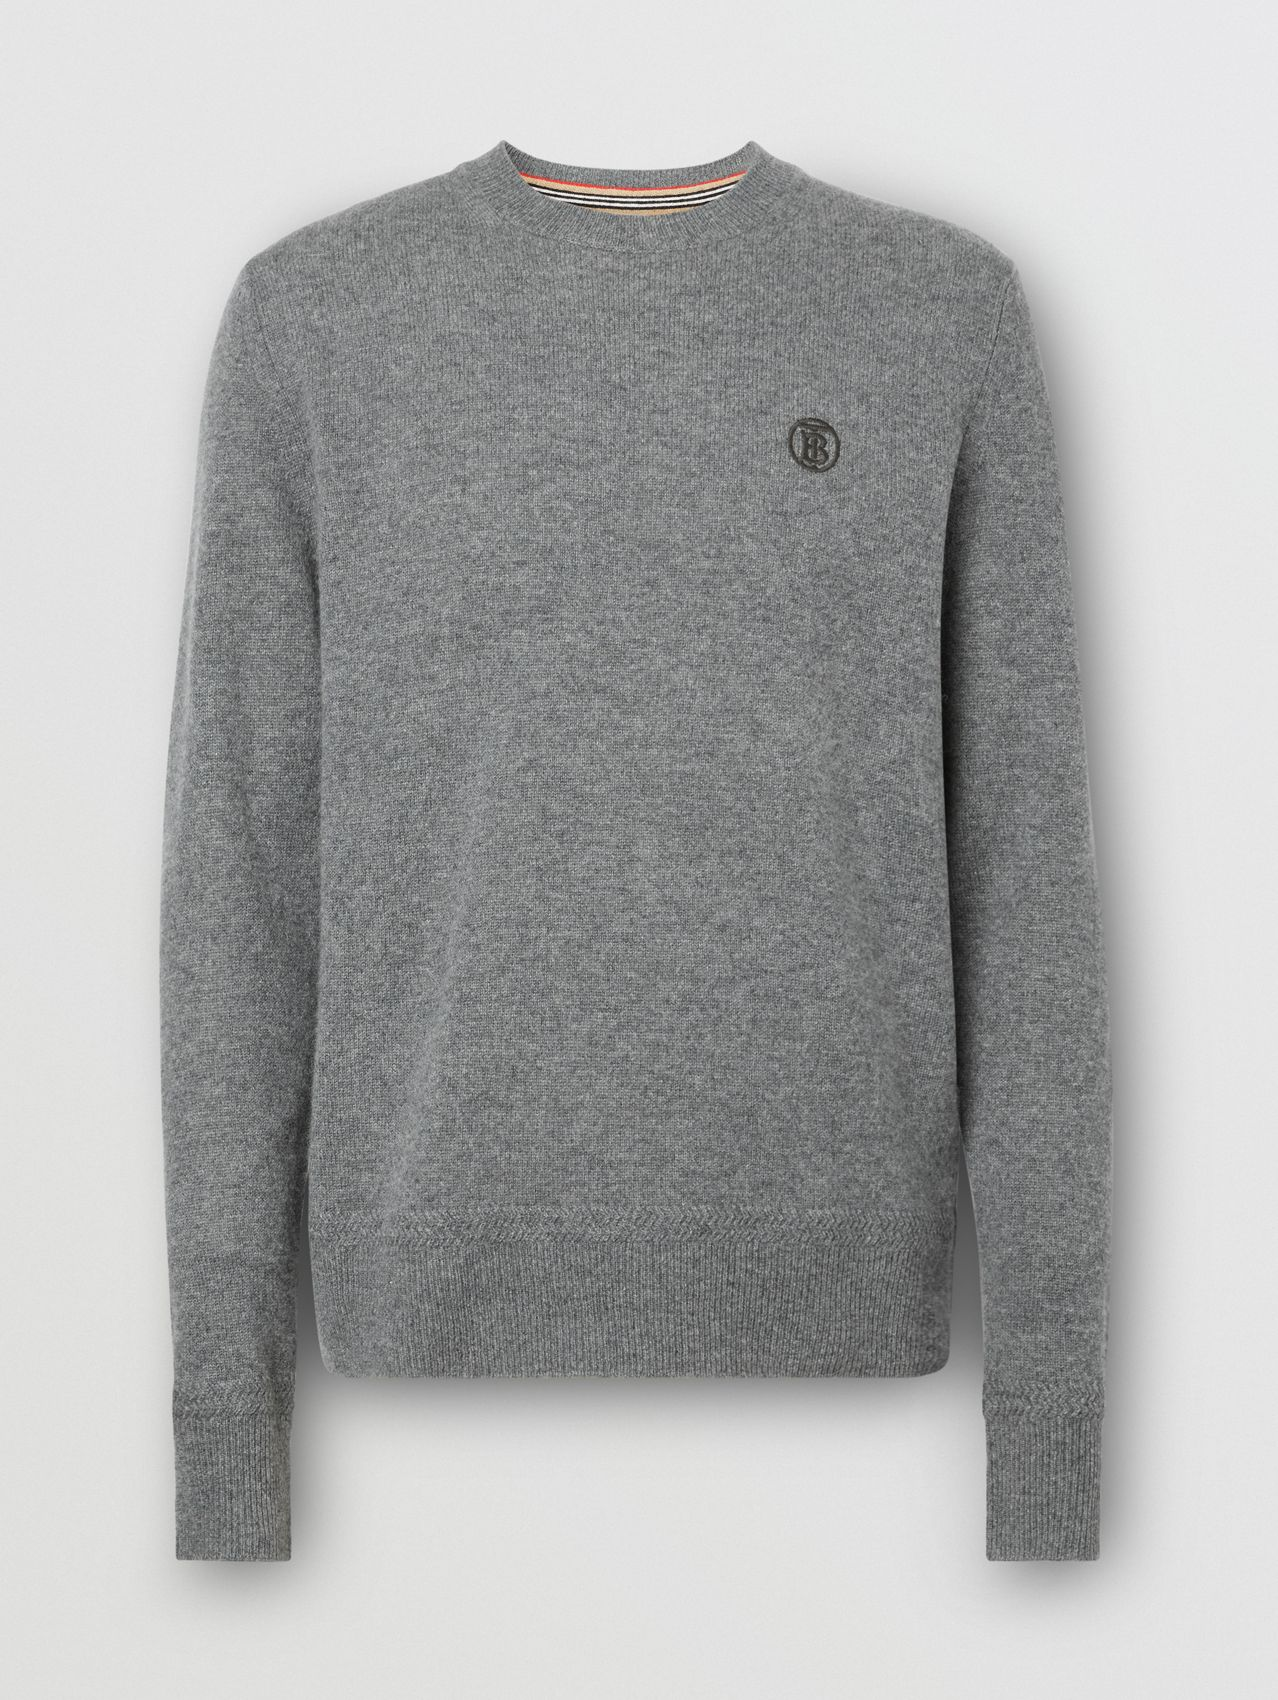 Monogram Motif Cashmere Sweater in Mid Grey Melange